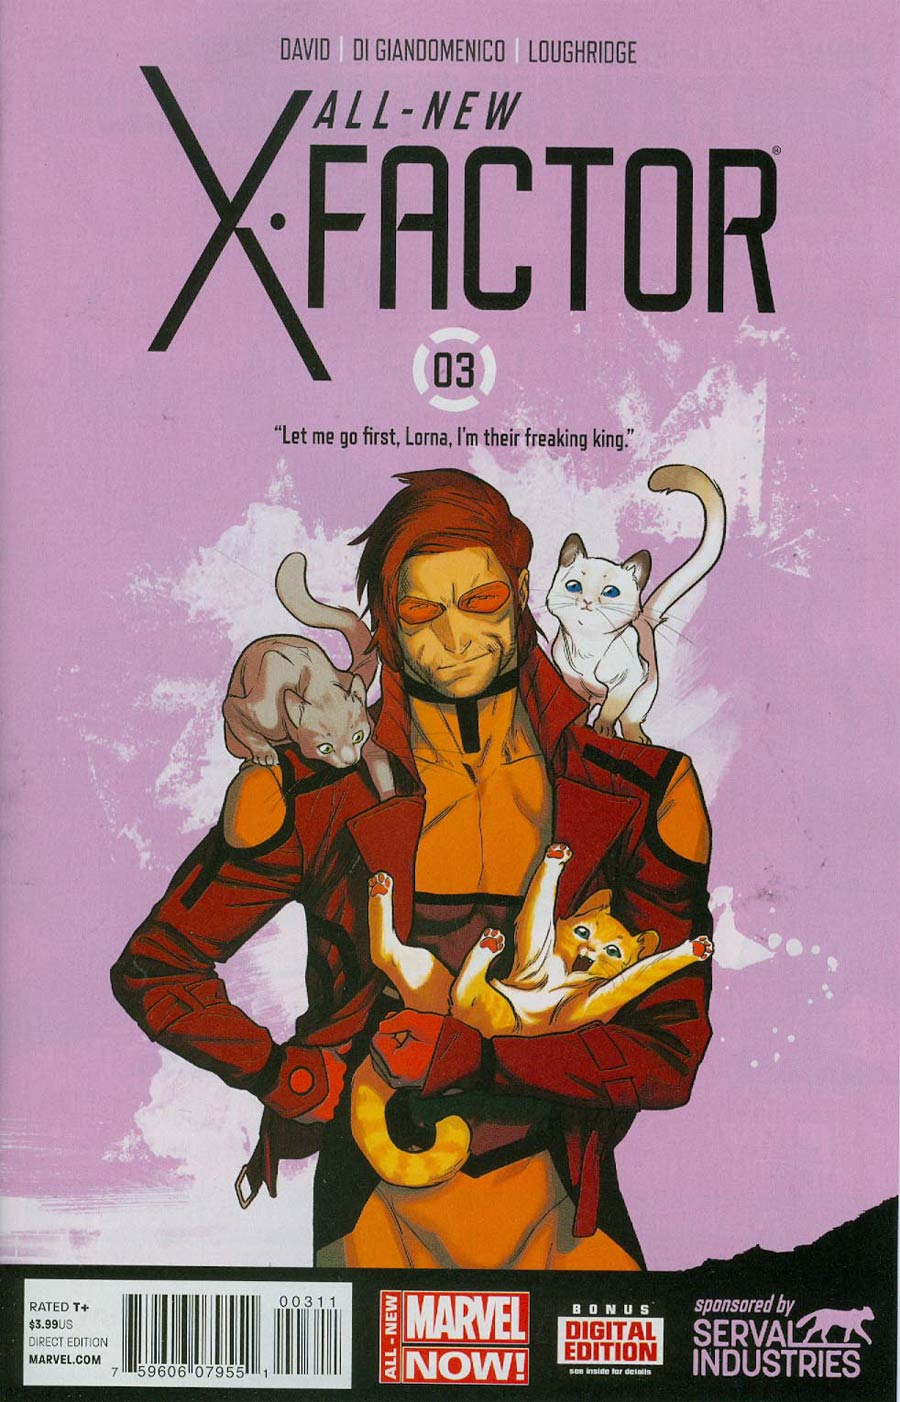 All-New X-Factor #3 (2014)